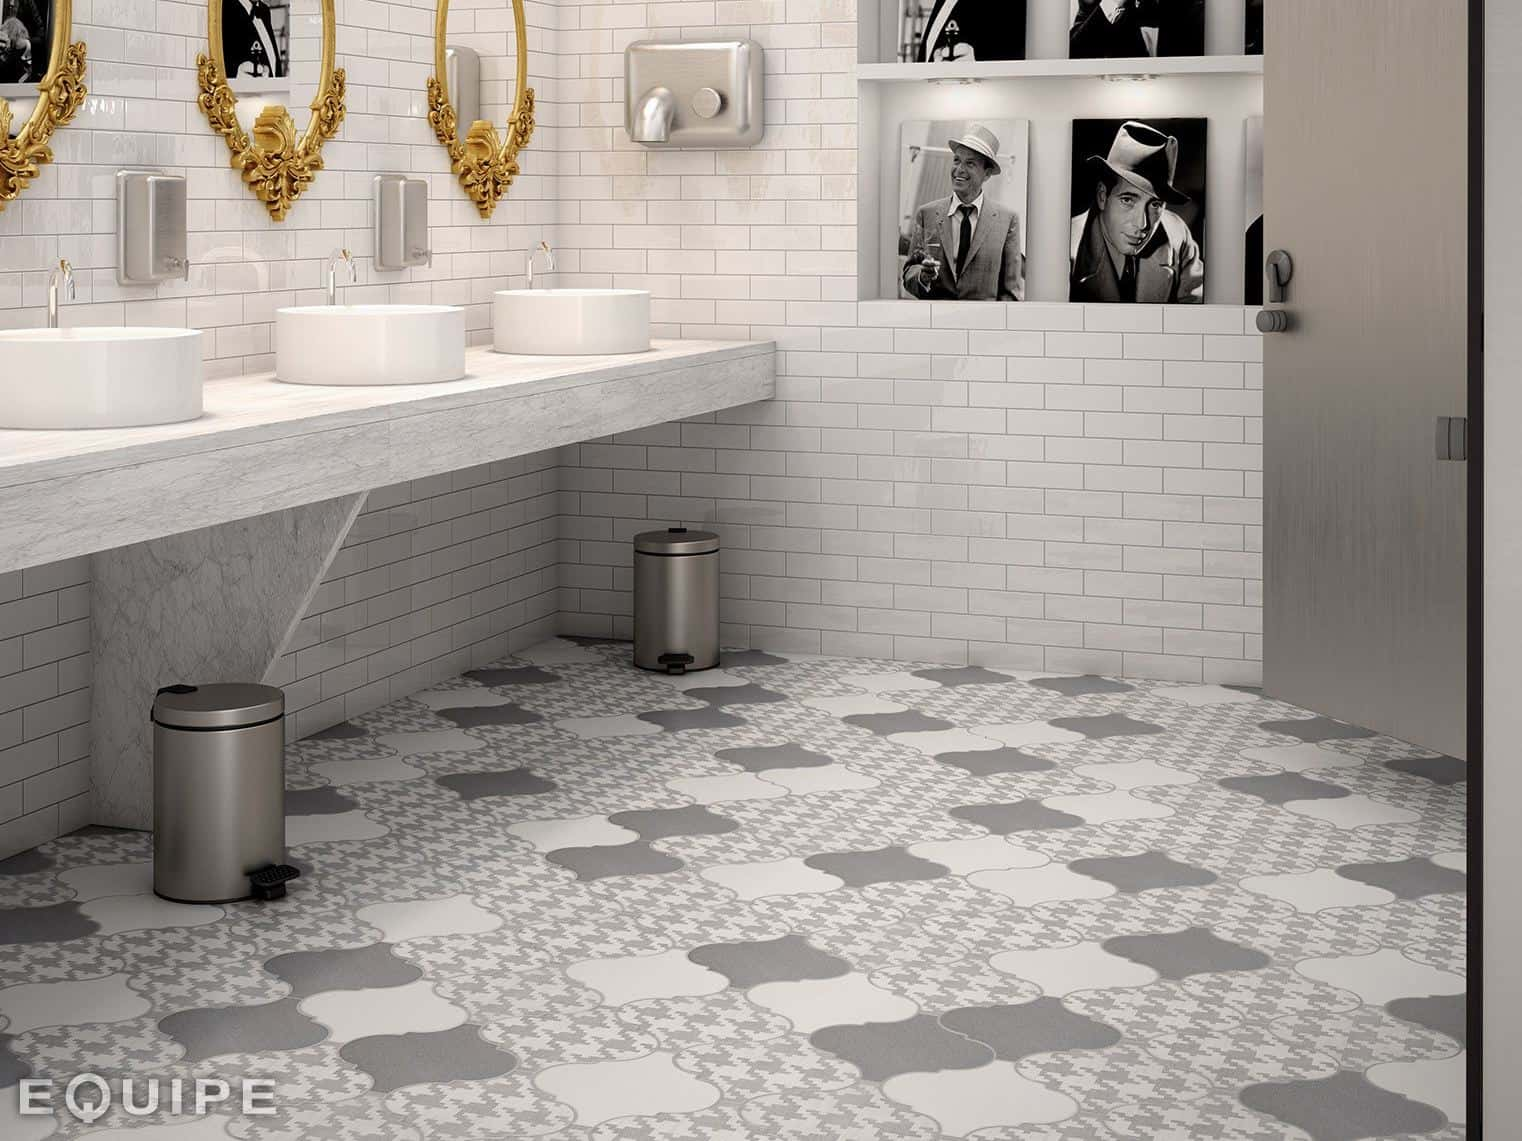 21 arabesque tile ideas for floor wall and backsplash view in gallery arabesque tile floor bathroom grey white 8g dailygadgetfo Choice Image